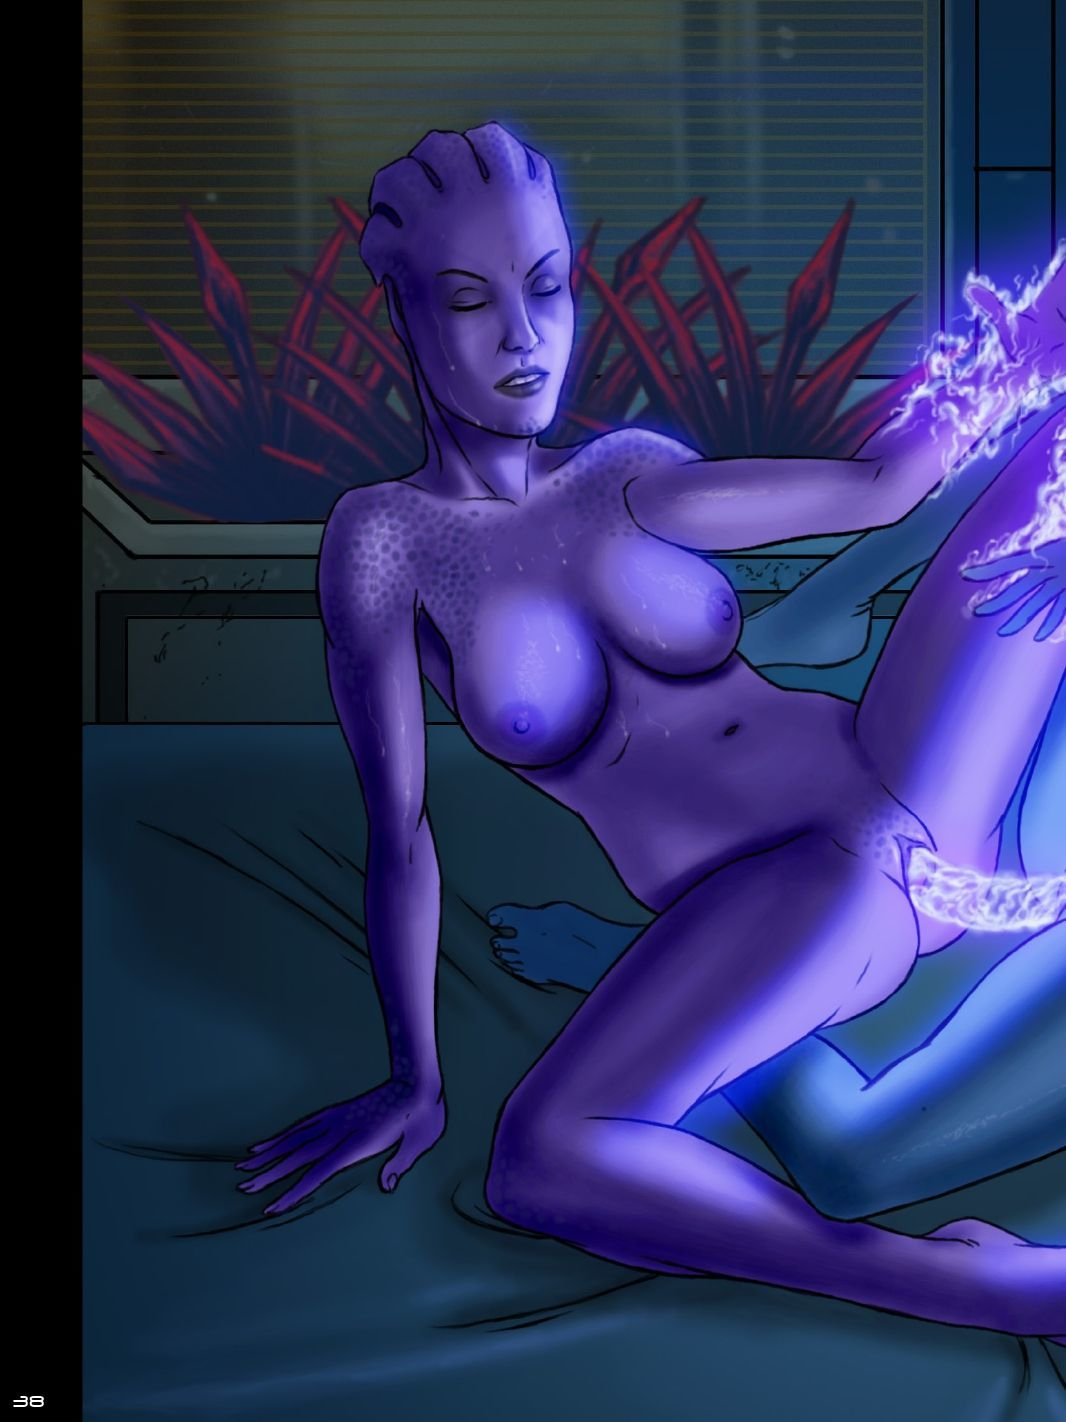 FORNAX_The_galaxys_finest_xenophilia_(Mass_Effect) comix_58037.jpg